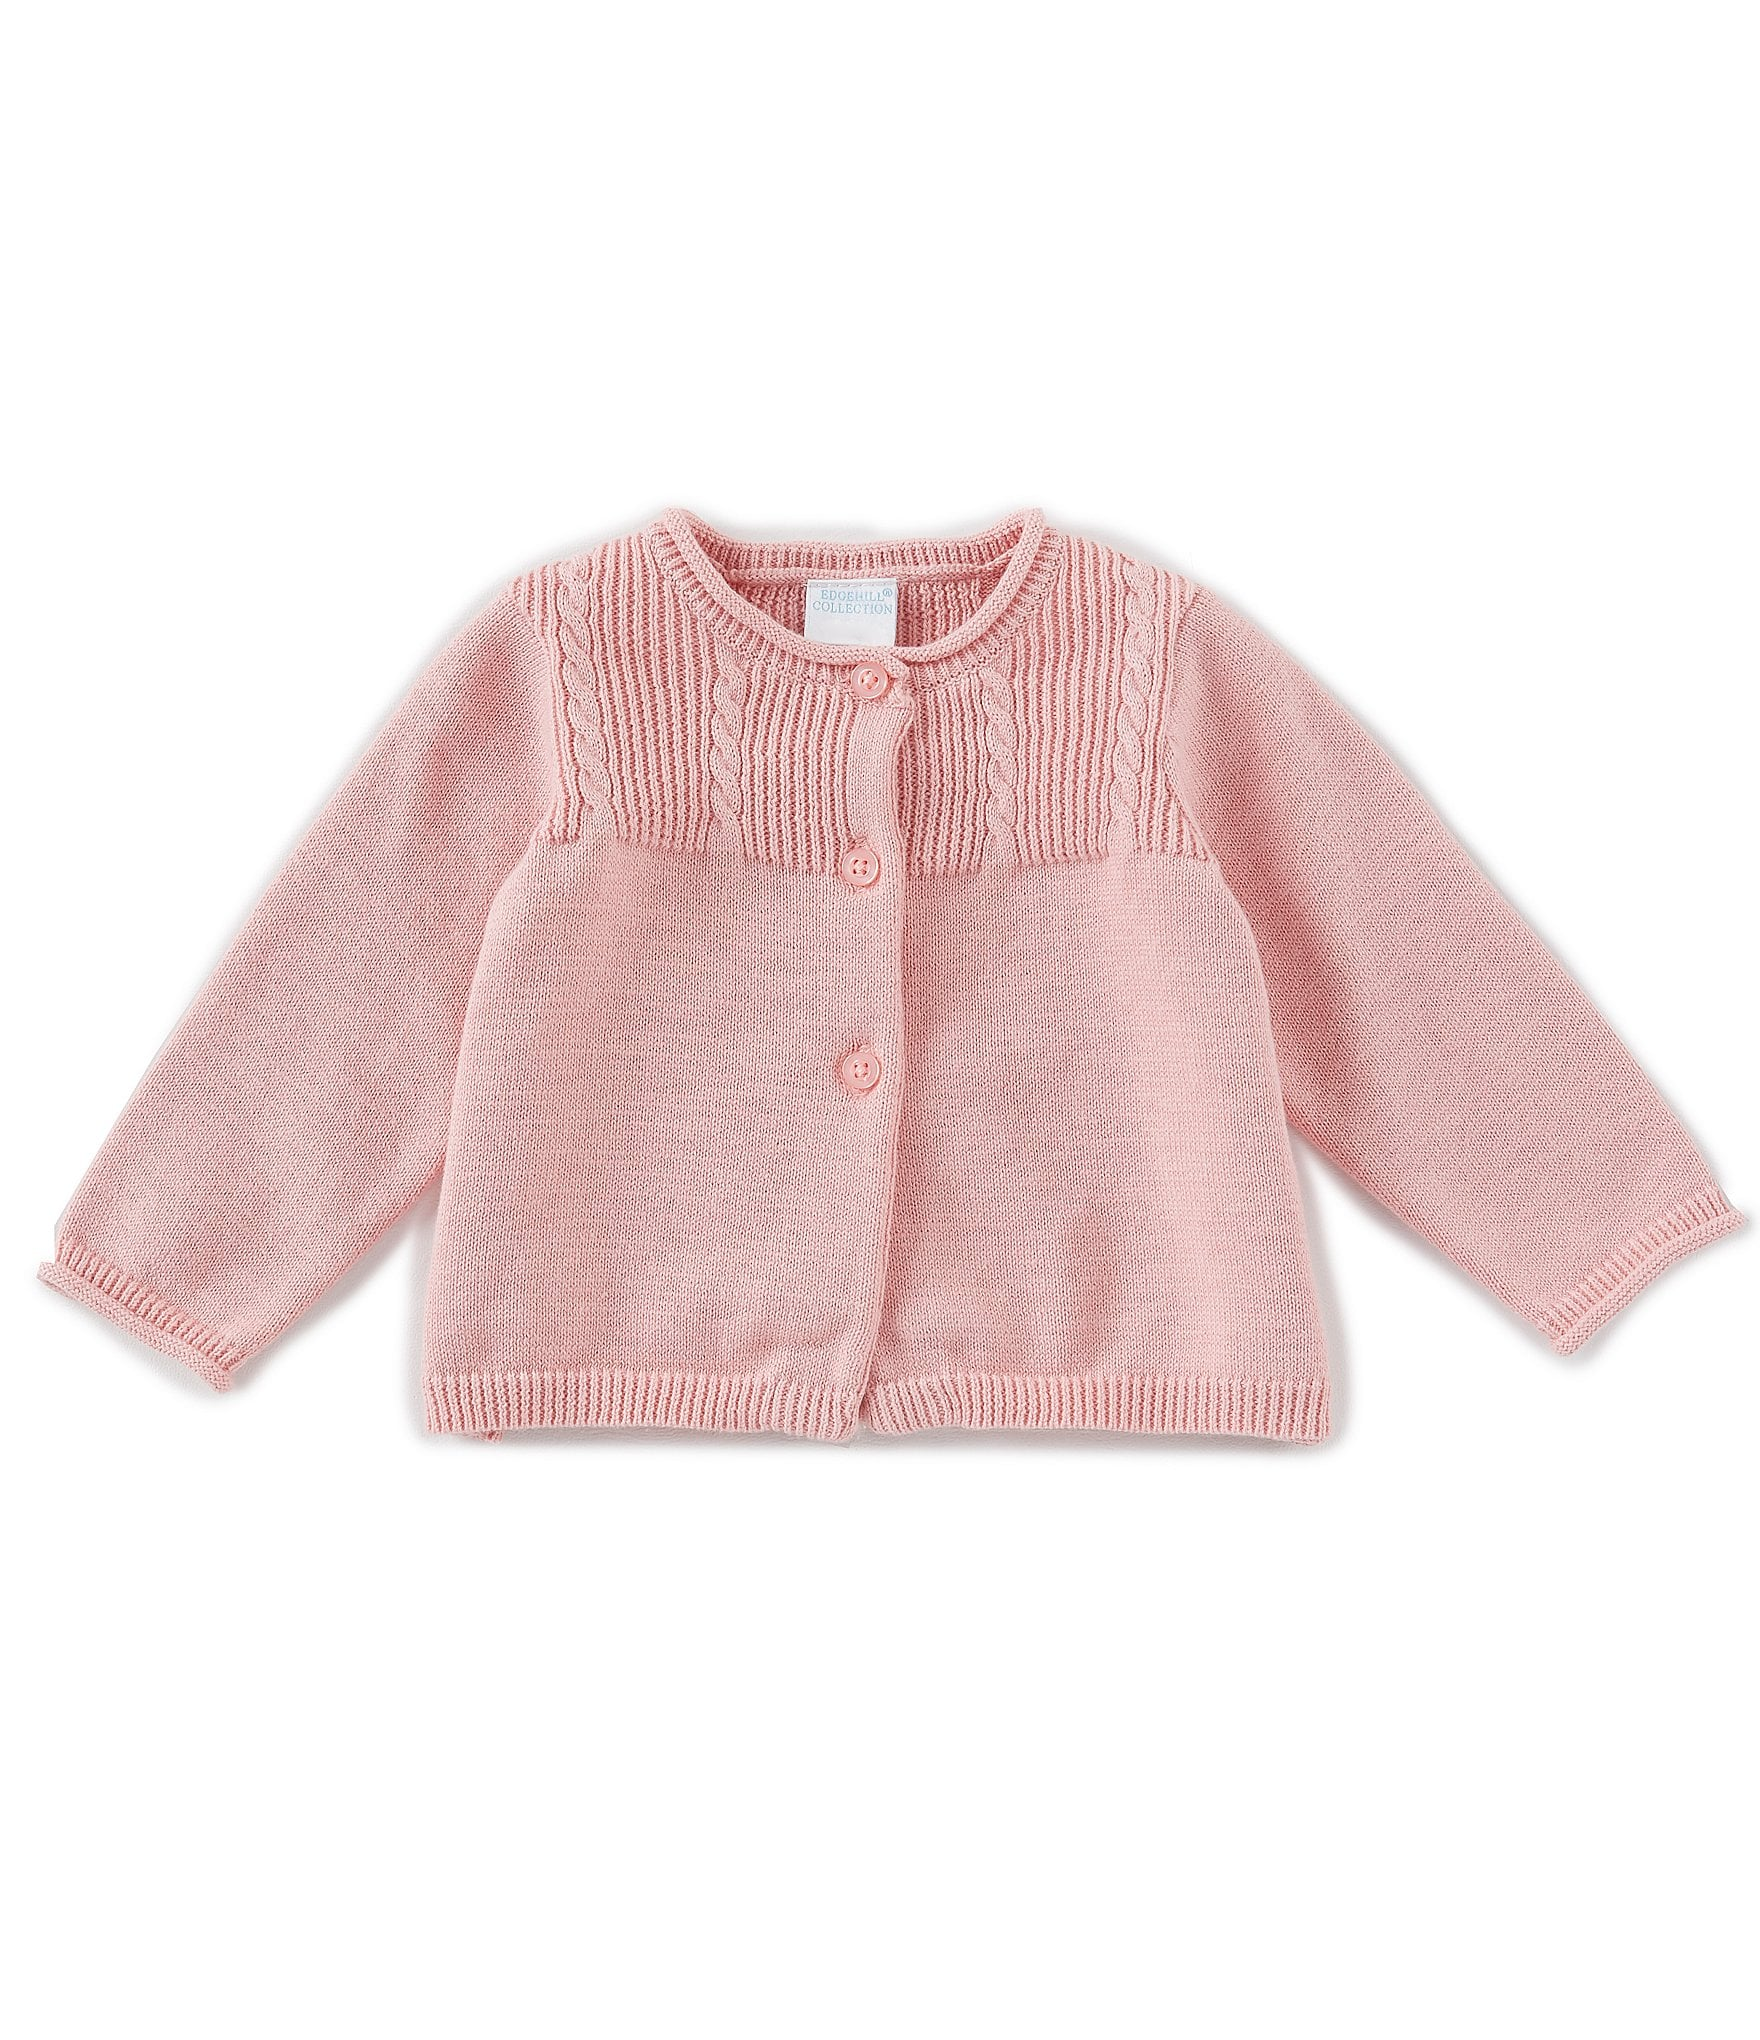 088002df3e36 Baby Girl Tops   Sweaters